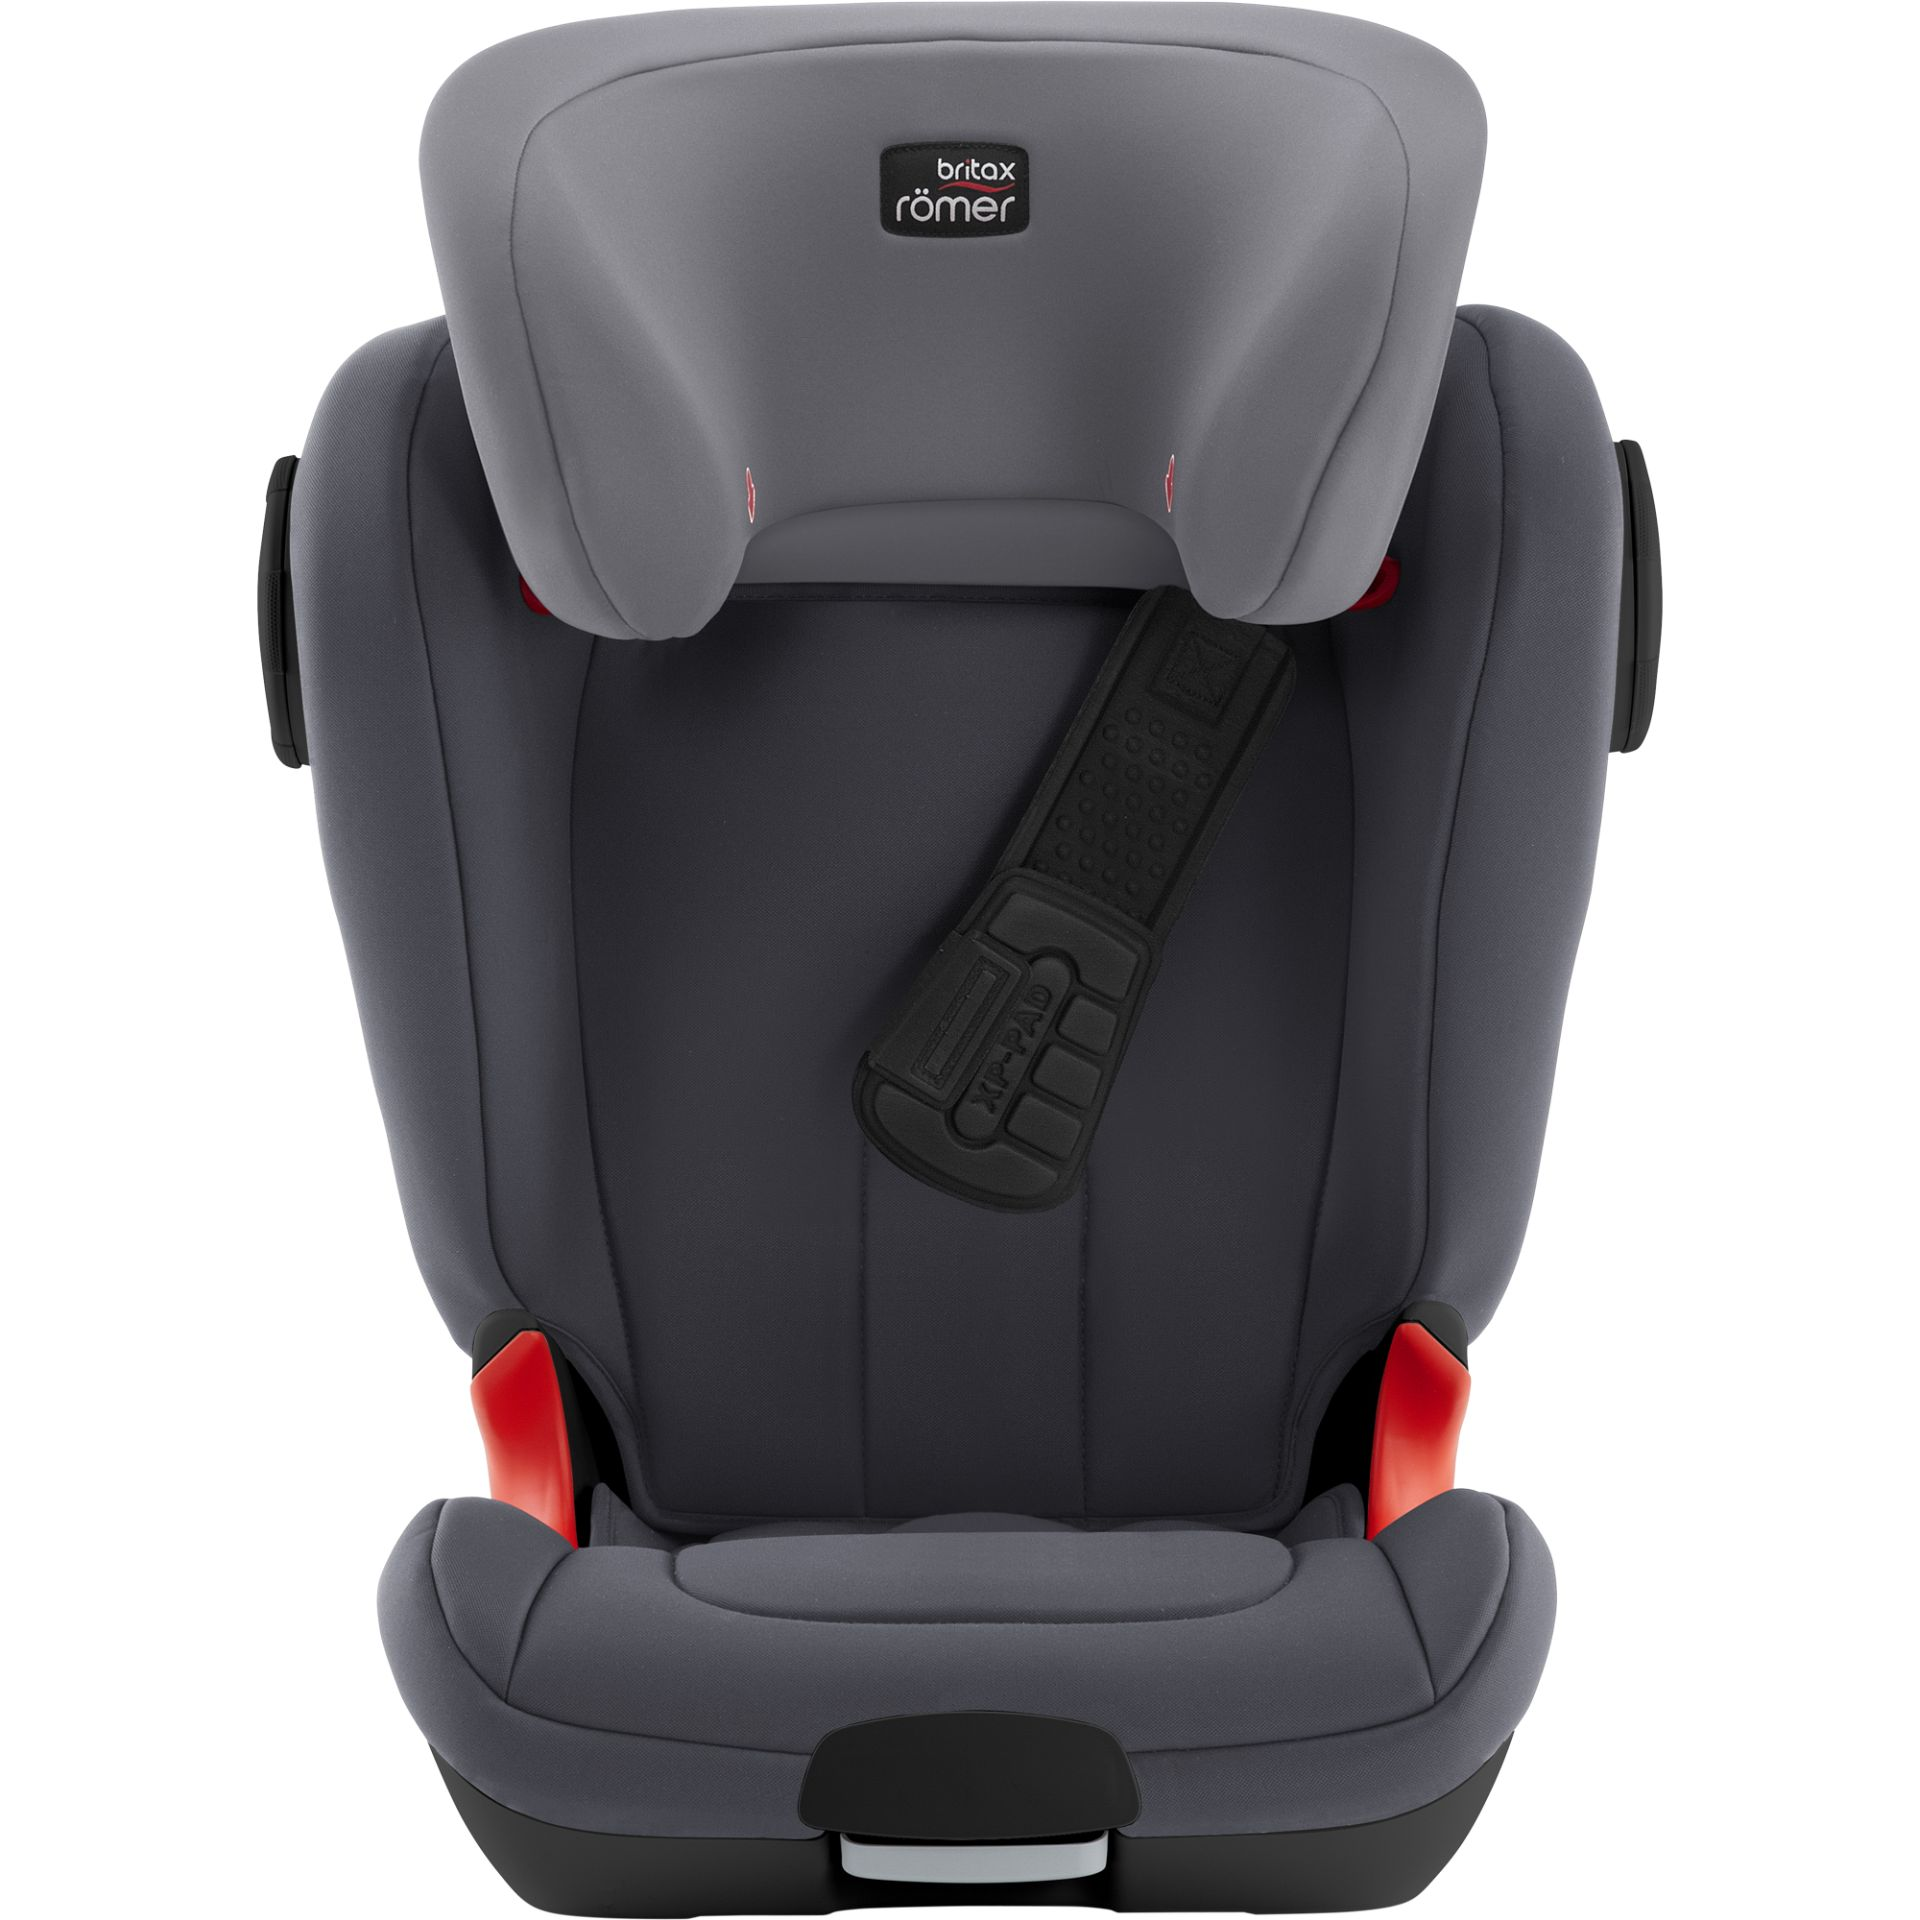 britax r mer child car seat kidfix xp sict black series 2018 storm grey buy at kidsroom. Black Bedroom Furniture Sets. Home Design Ideas